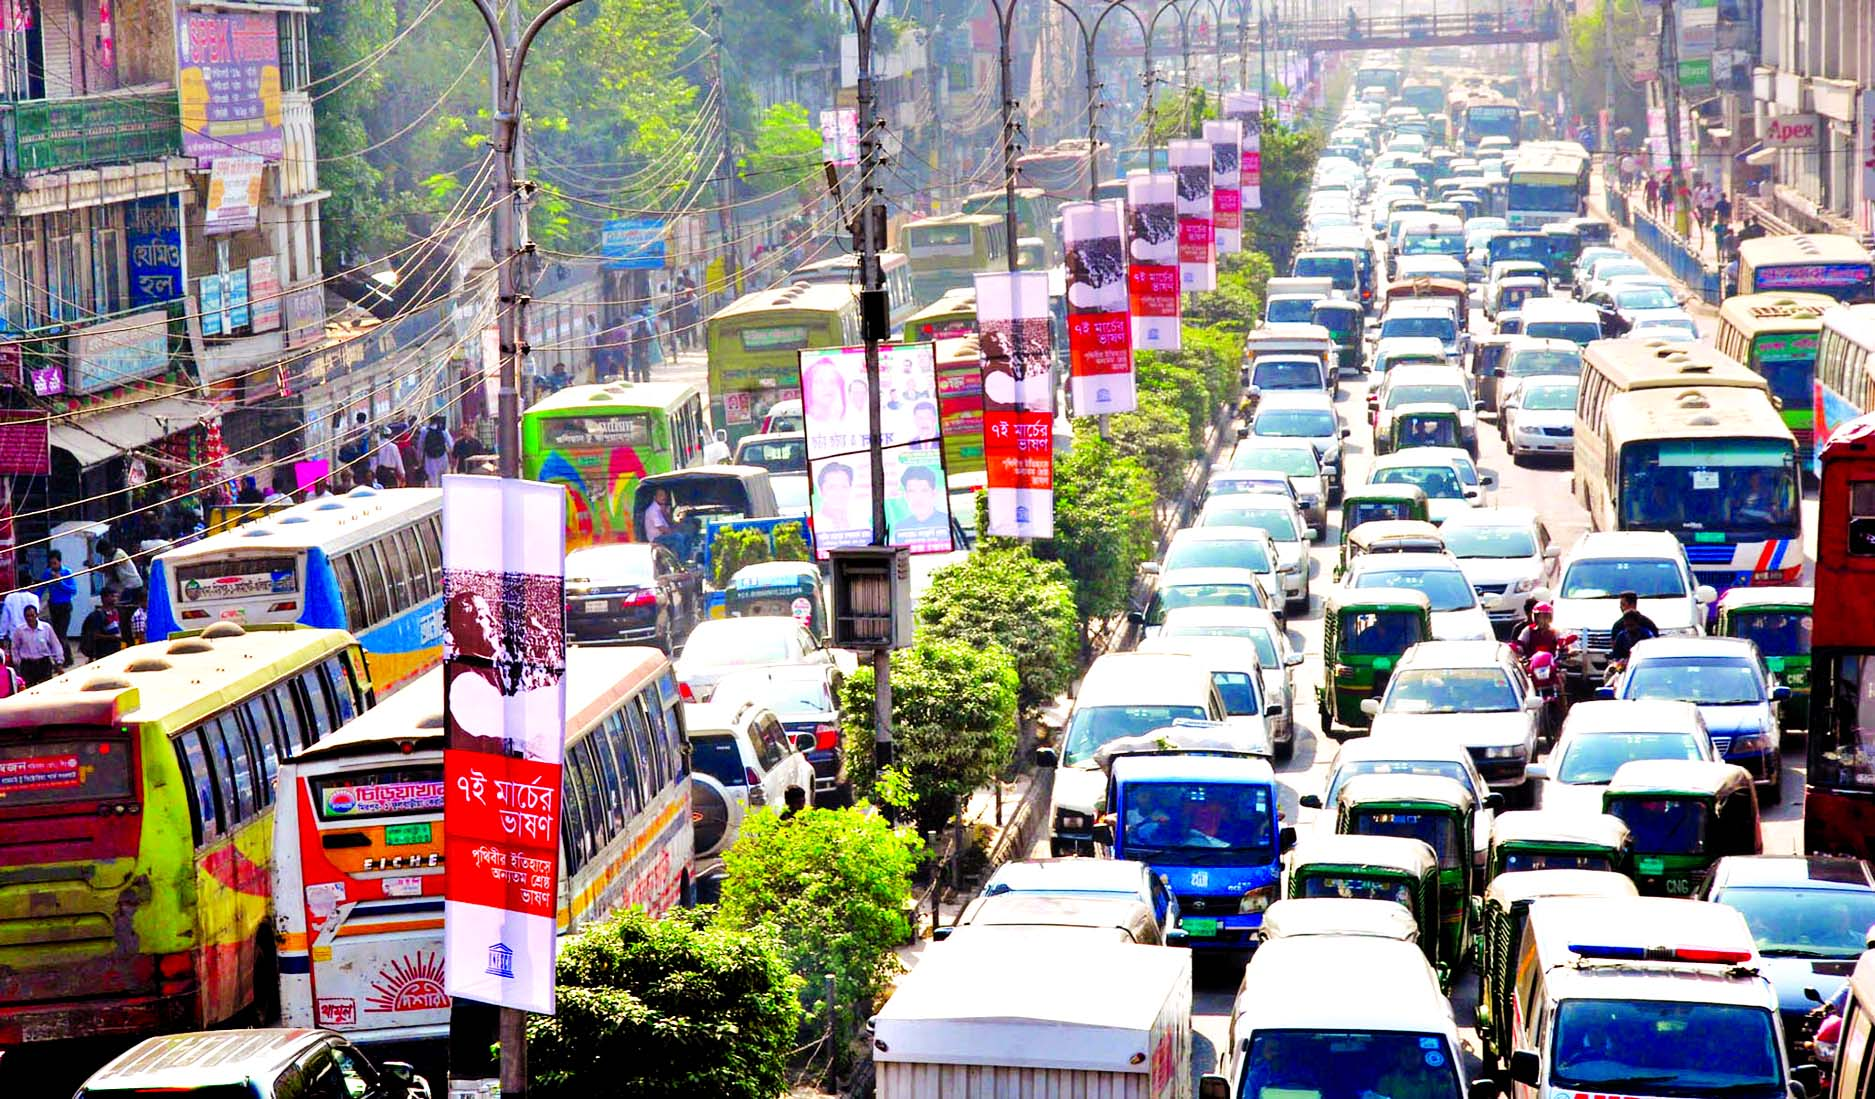 City experienced severe traffic gridlock at different strategic points almost whole the day on Tuesday as hundreds of vehicles got stuck, causing sufferings to commuters. This photo was taken from Bangla Motor area.